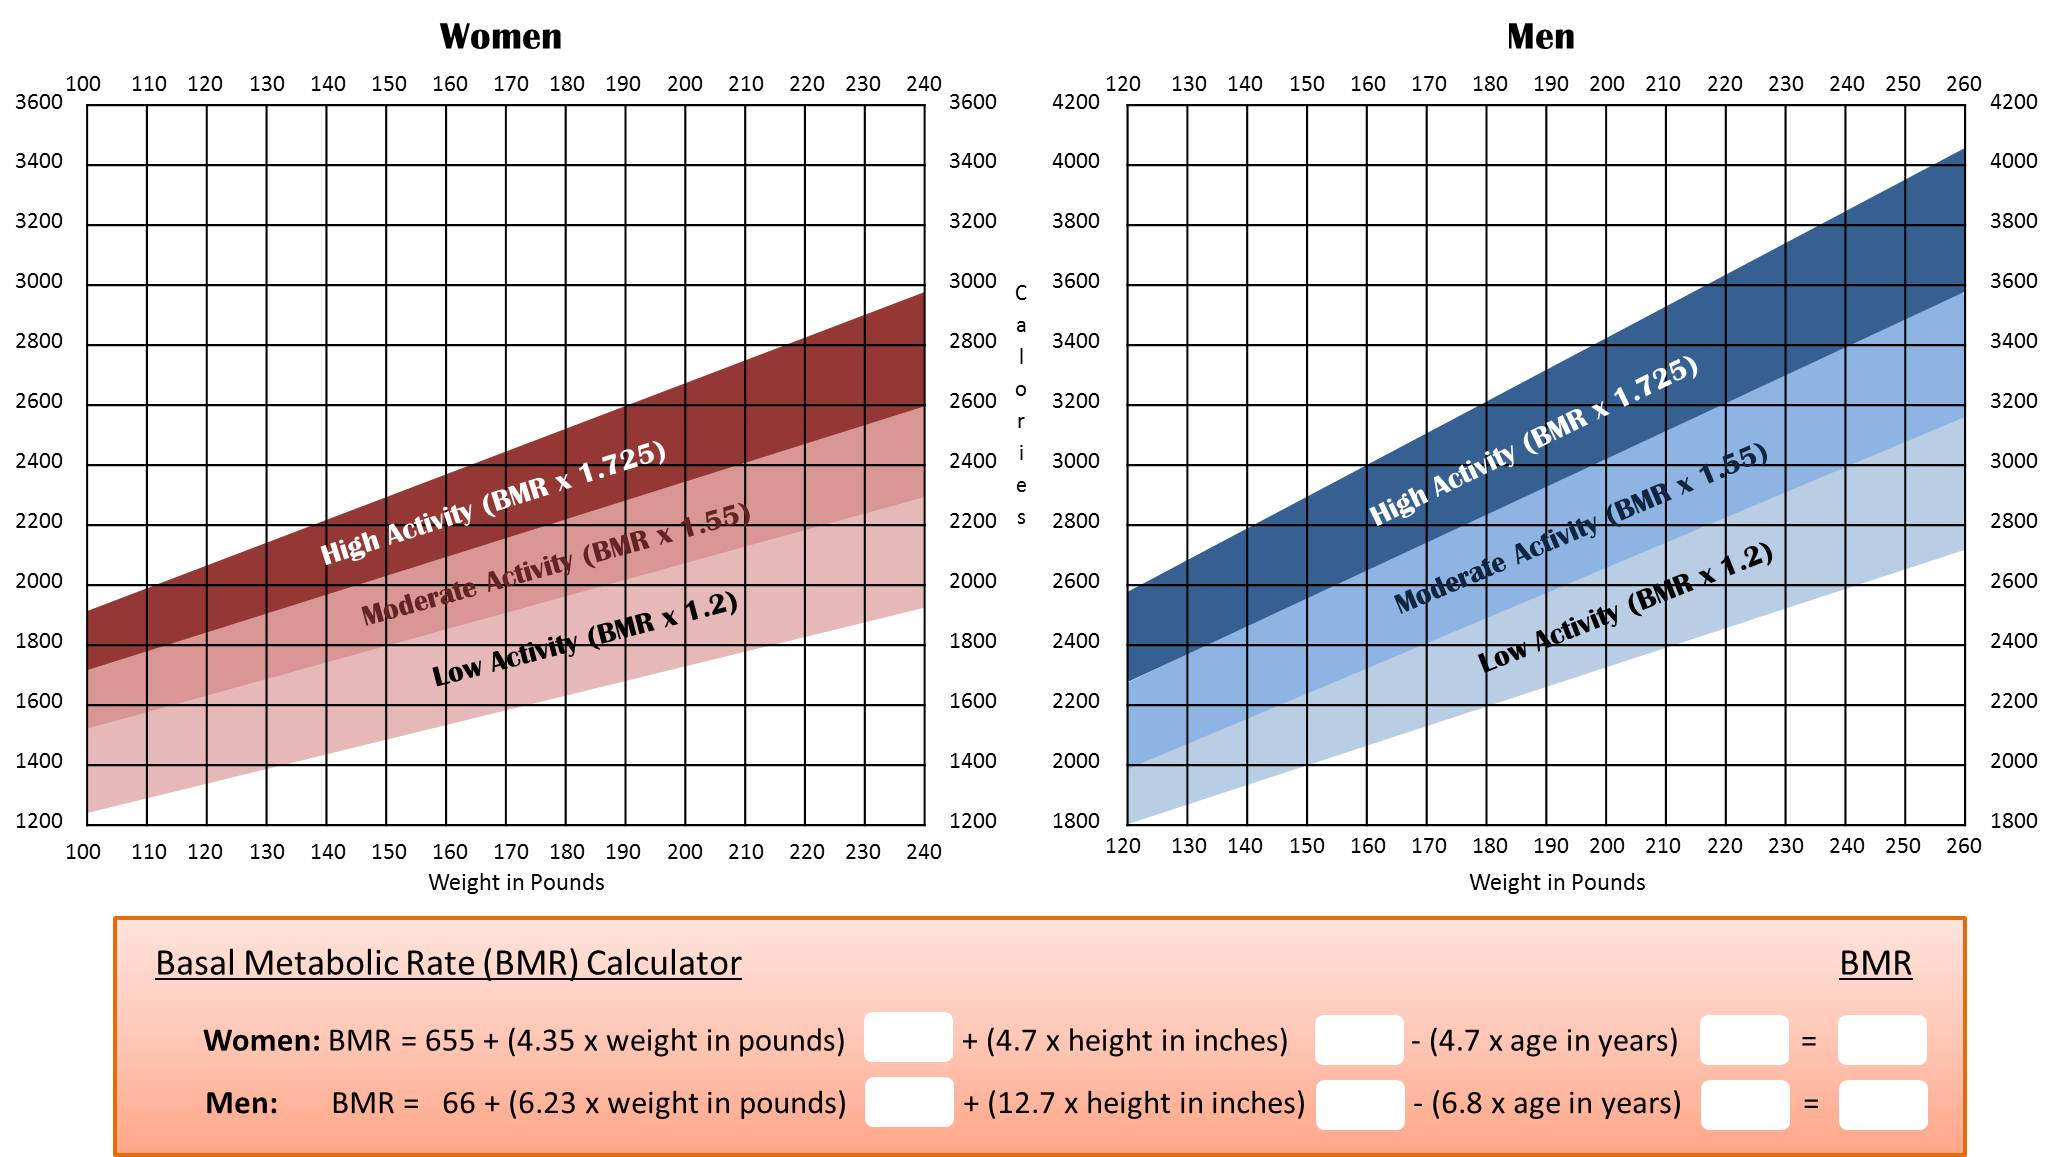 basal metabolic rate calculator